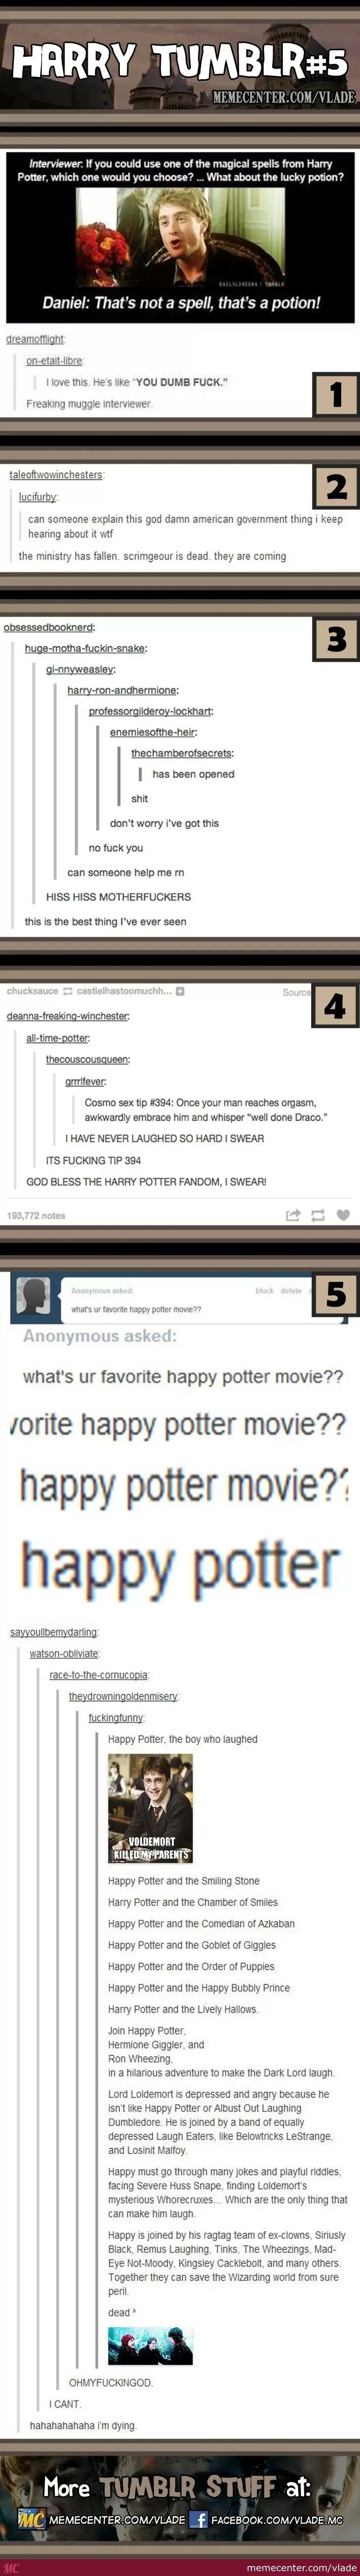 Harry Tumblr #5 All but one are funny